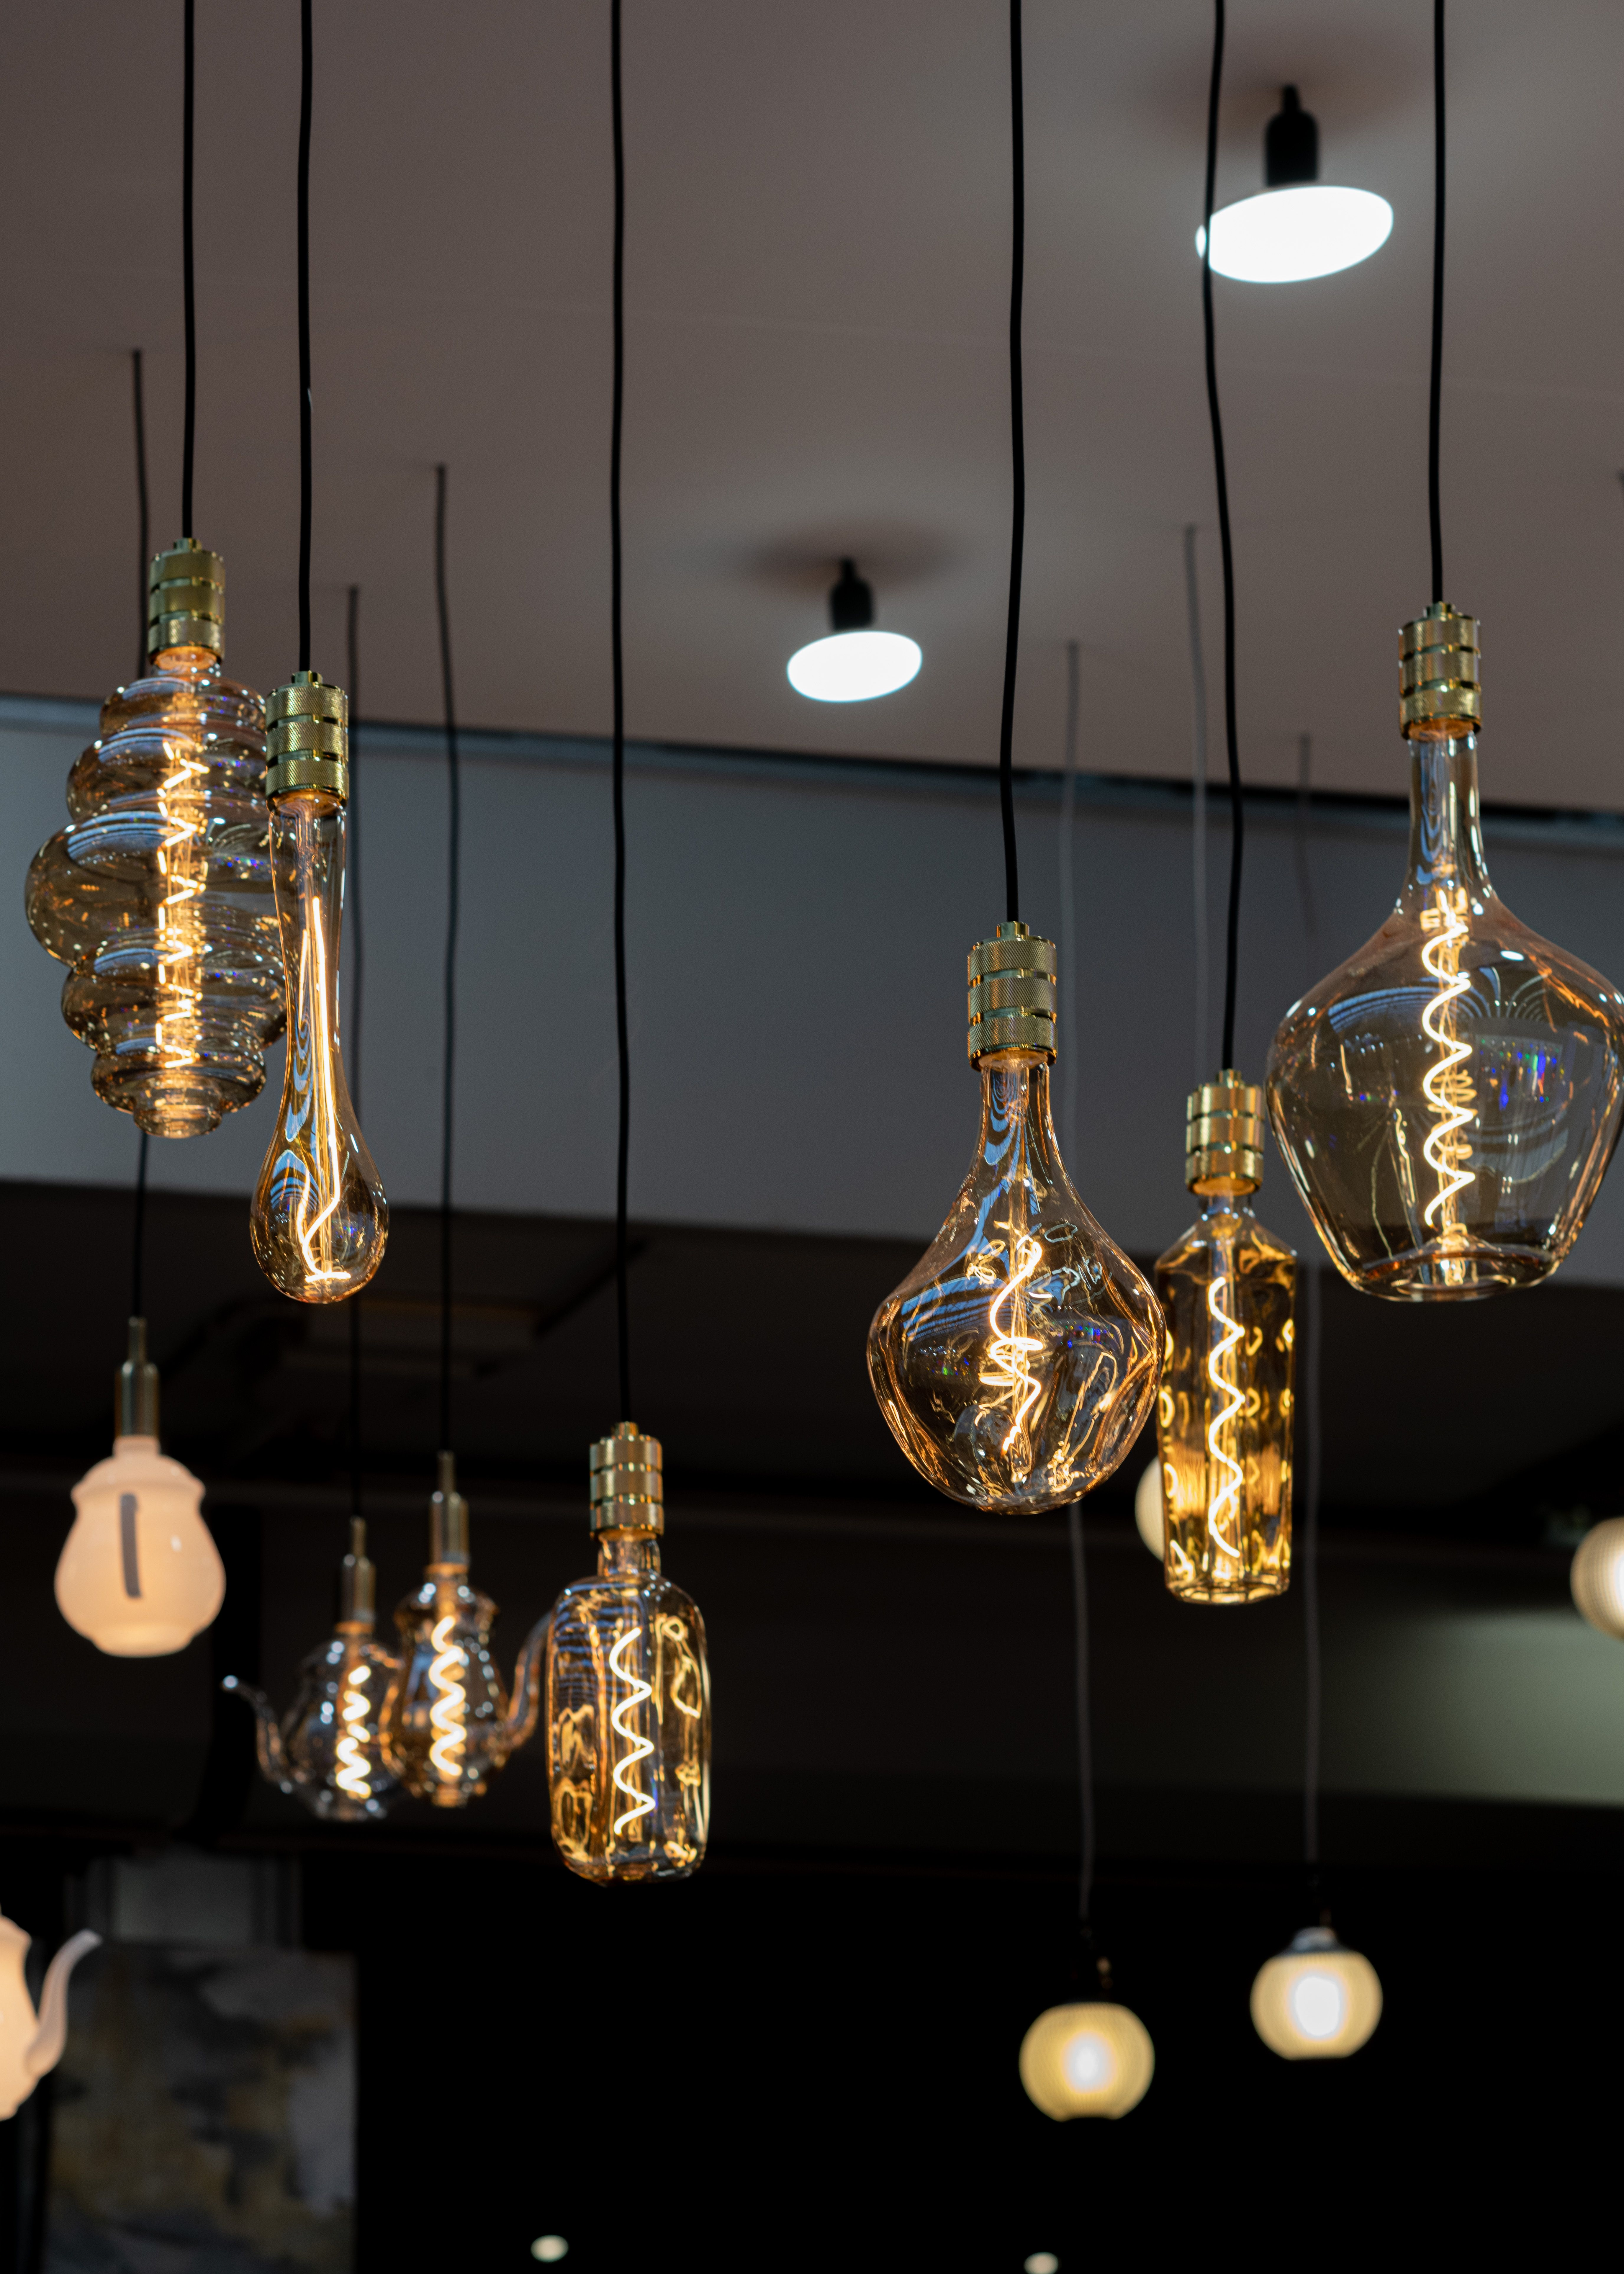 Verwonderend Great display of several Bailey LED Filament lamps and shiny lamp XK-02